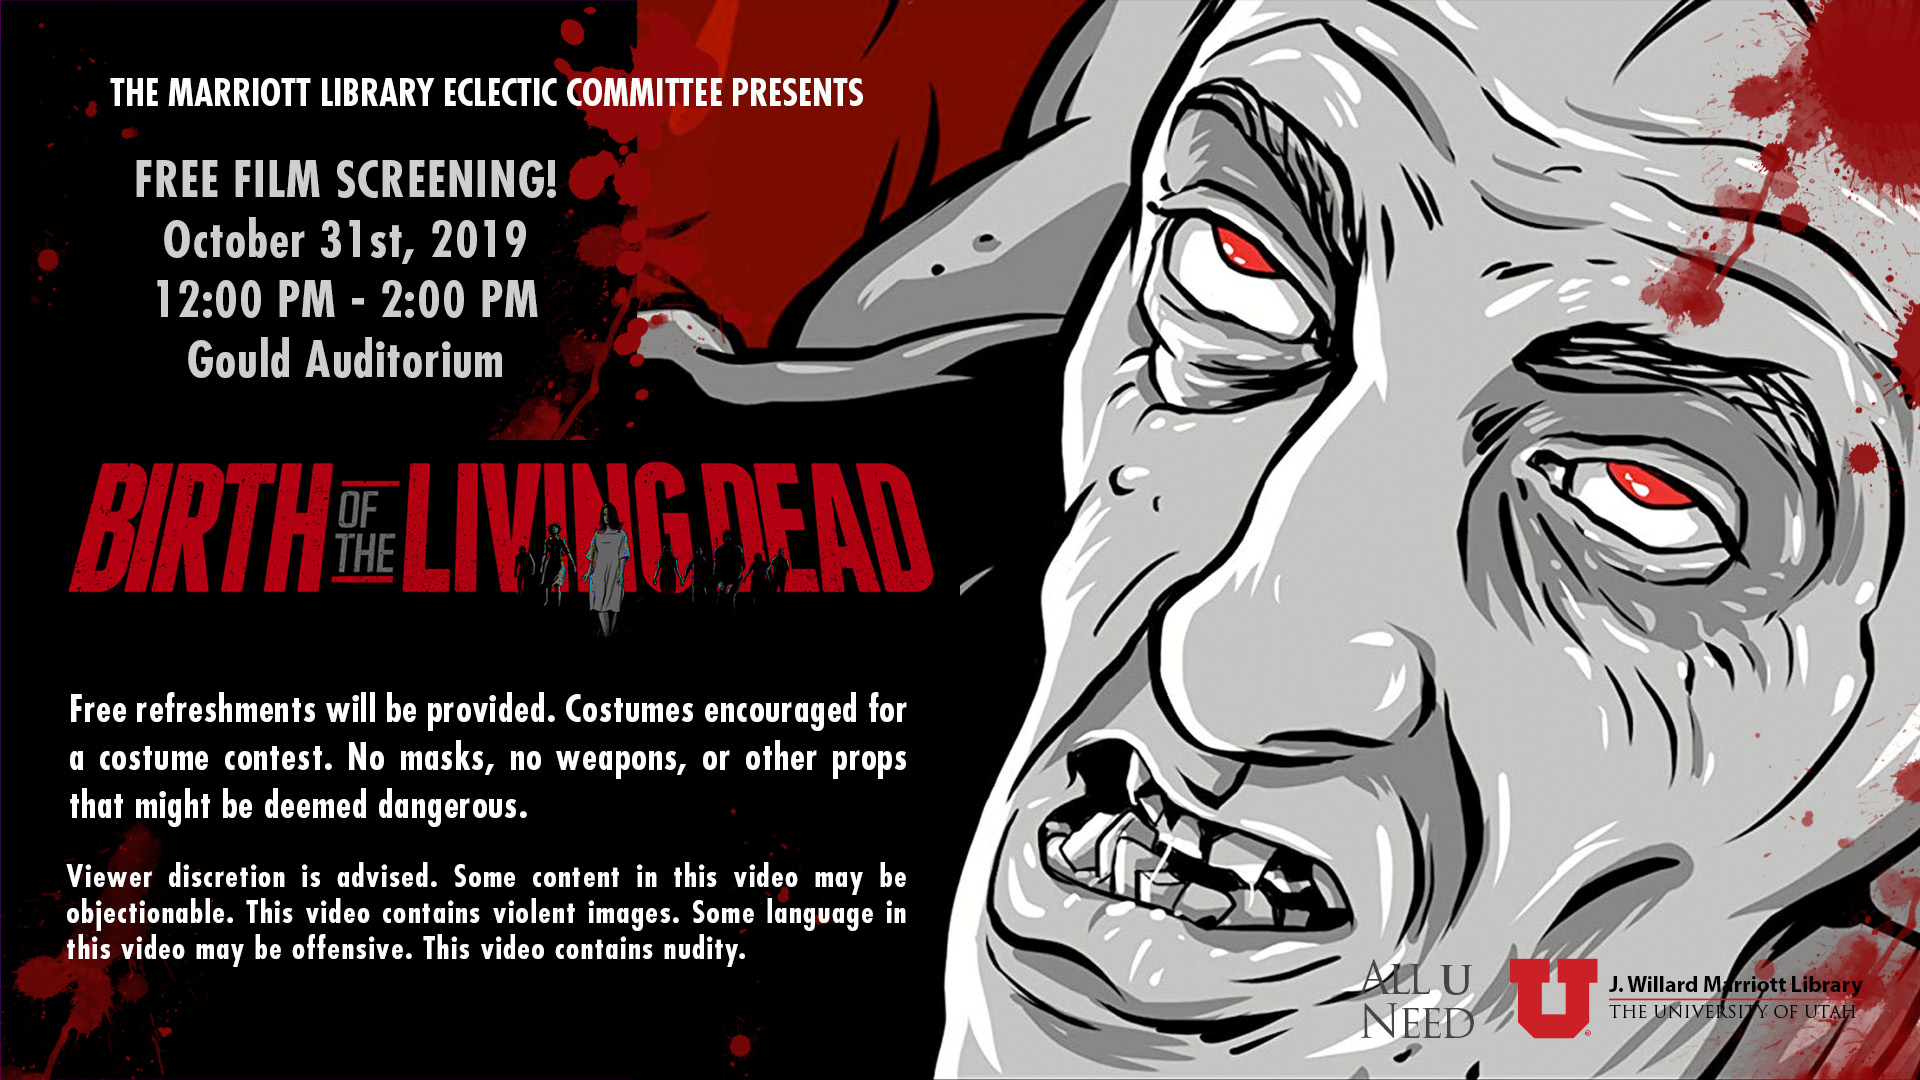 free film screen birth of the living dead october 31st 2019 12 pm to 2pm in the gould auditorium